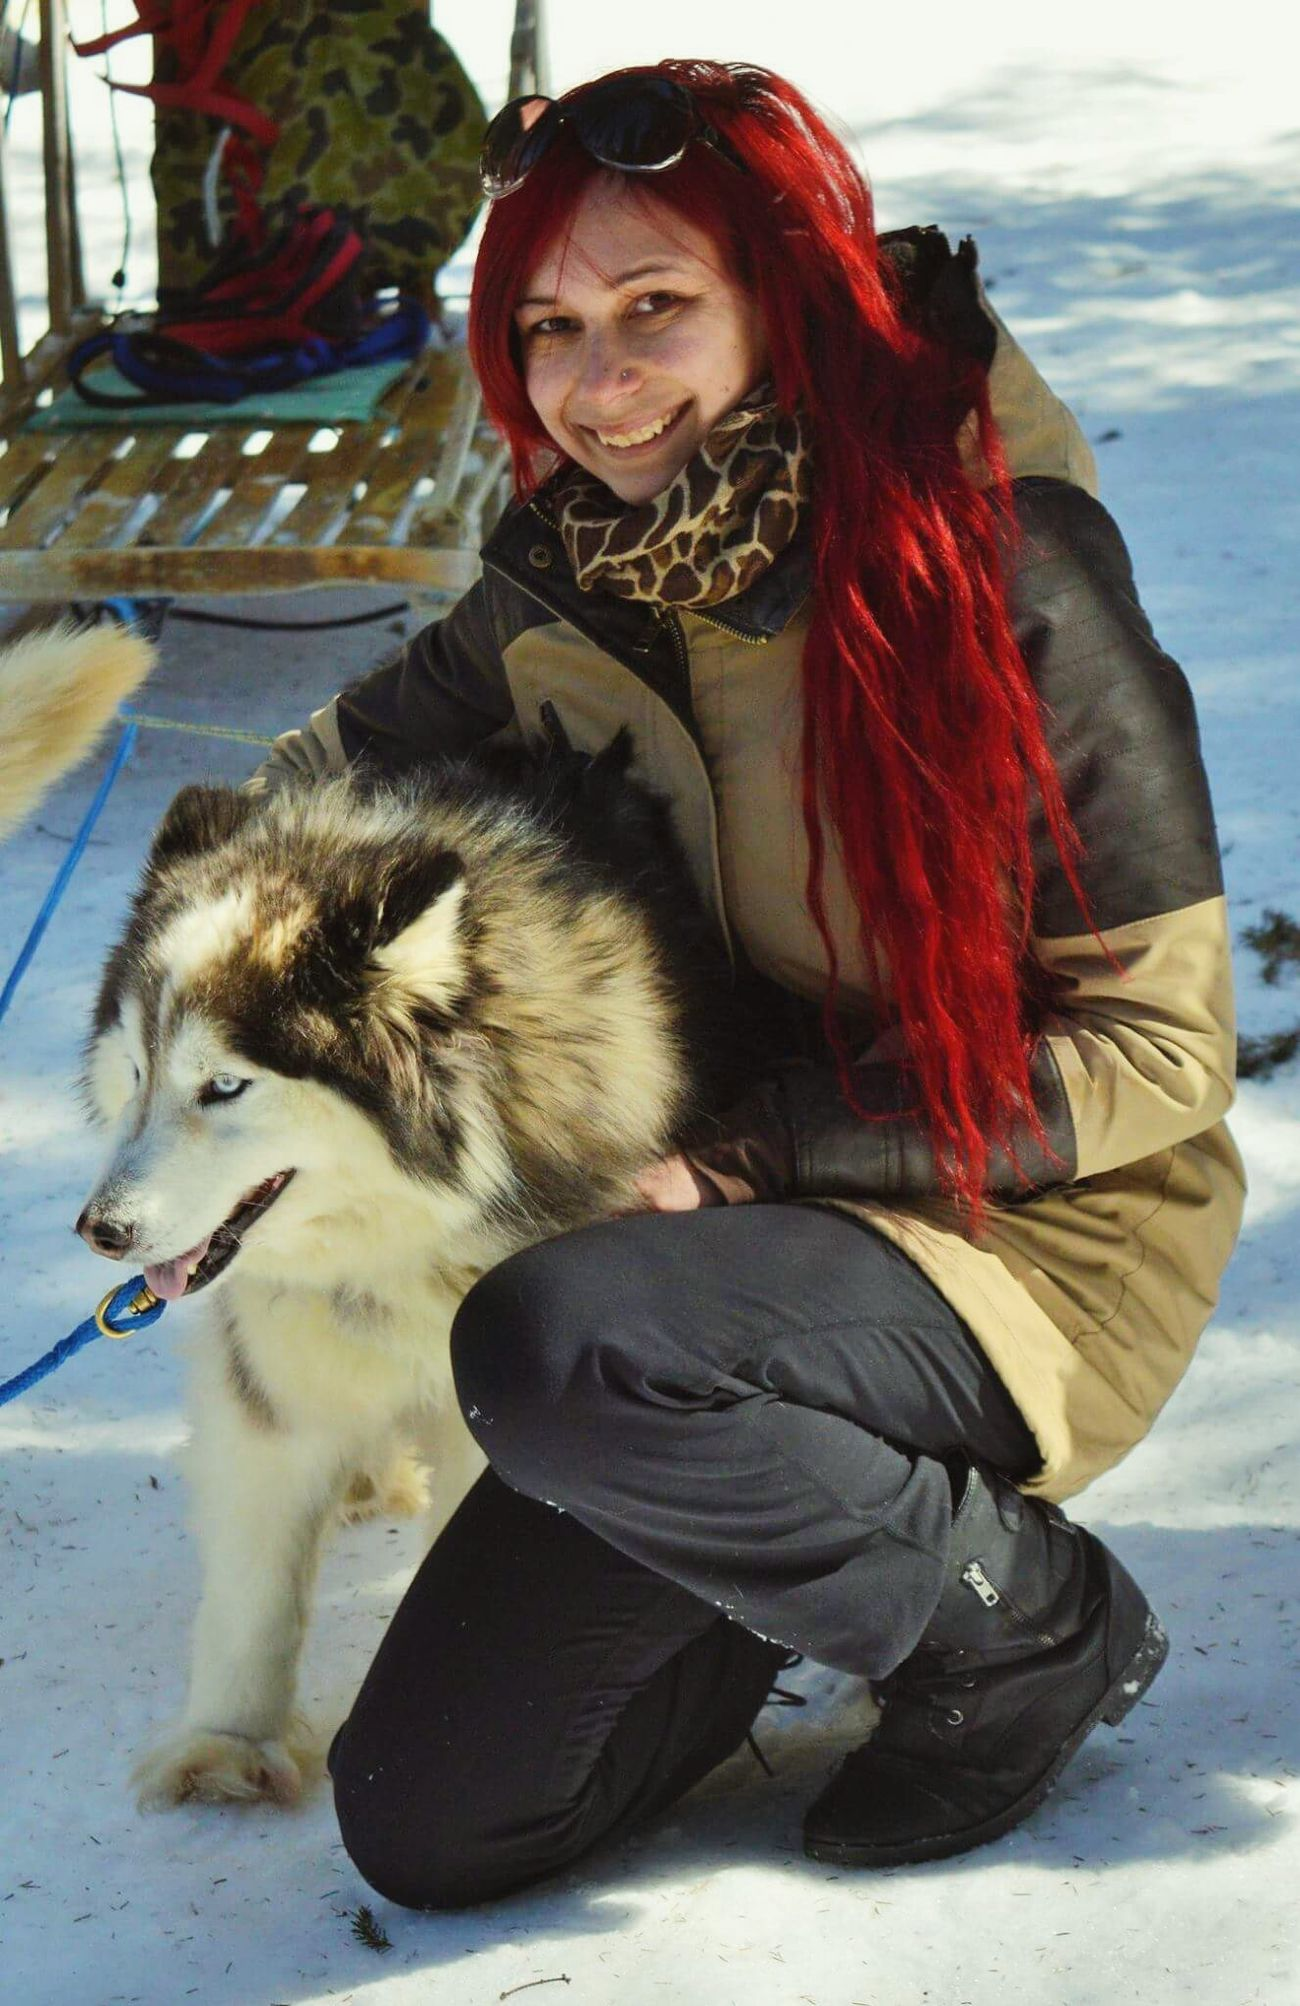 Dog Sled Husky Selfportrait Sunny Winter Day Amazing Experience